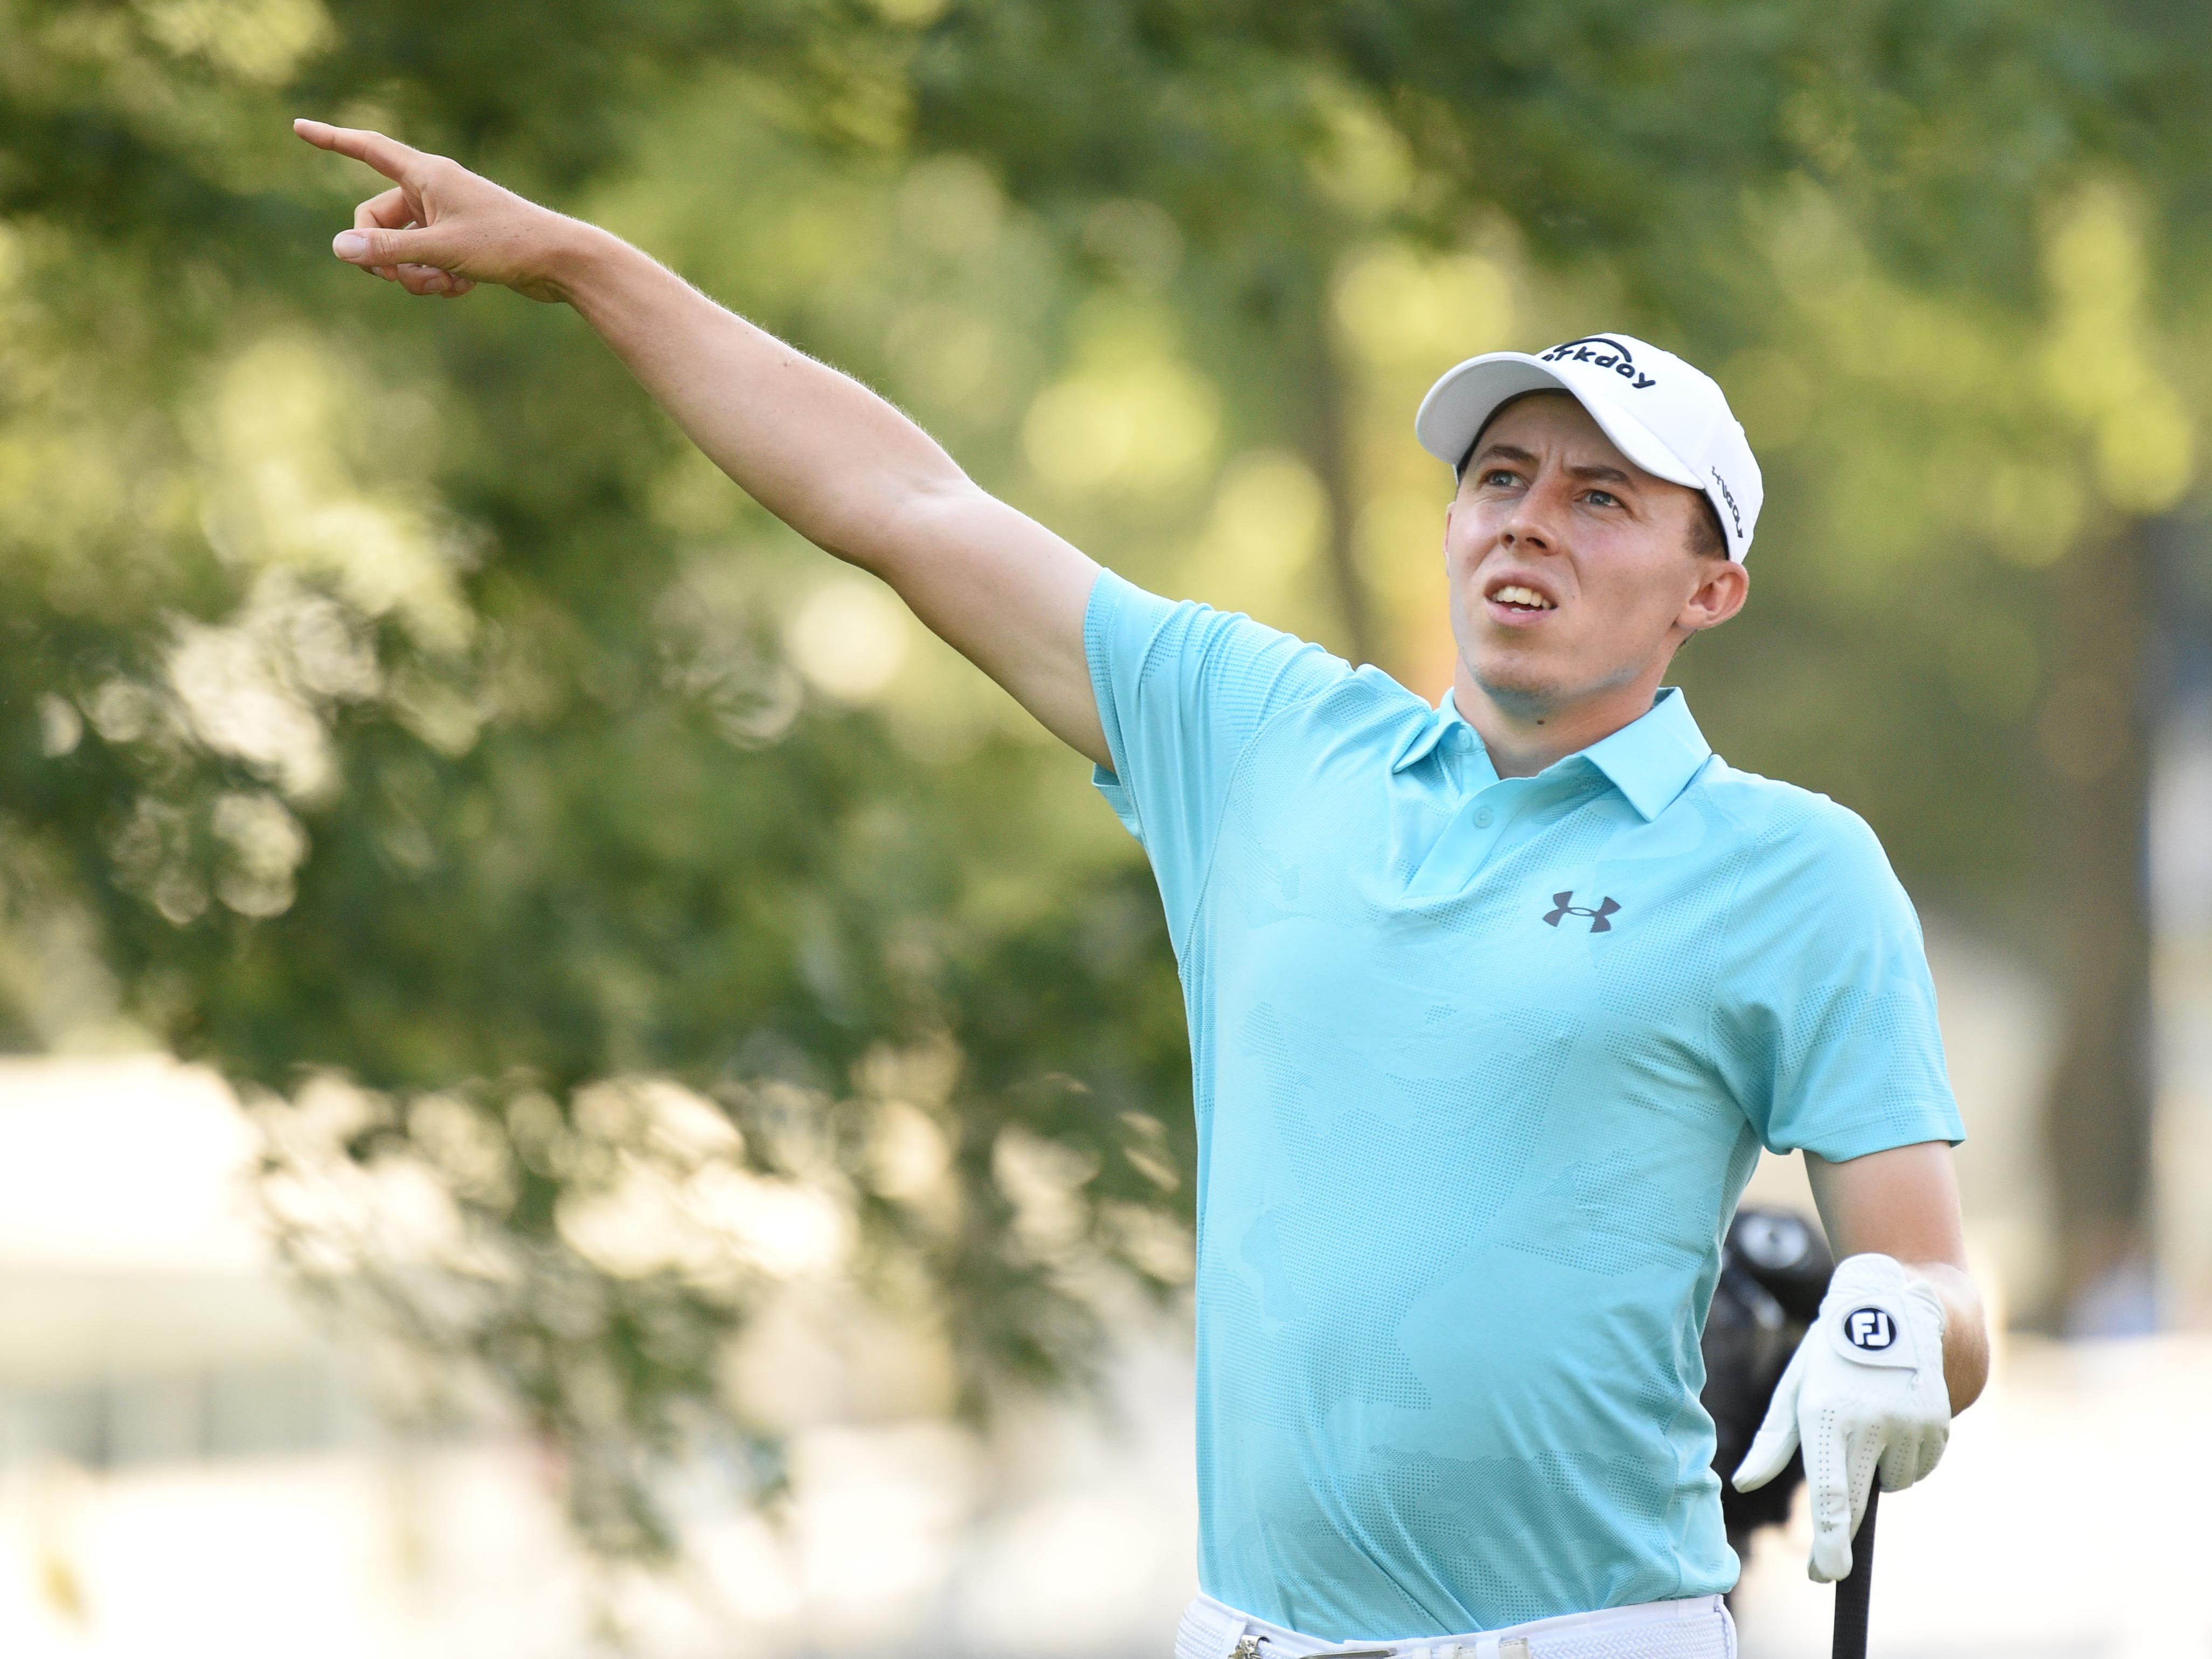 Matthew Fitzpatrick reacts after hitting his tee shot on the 11th hole during the first round.